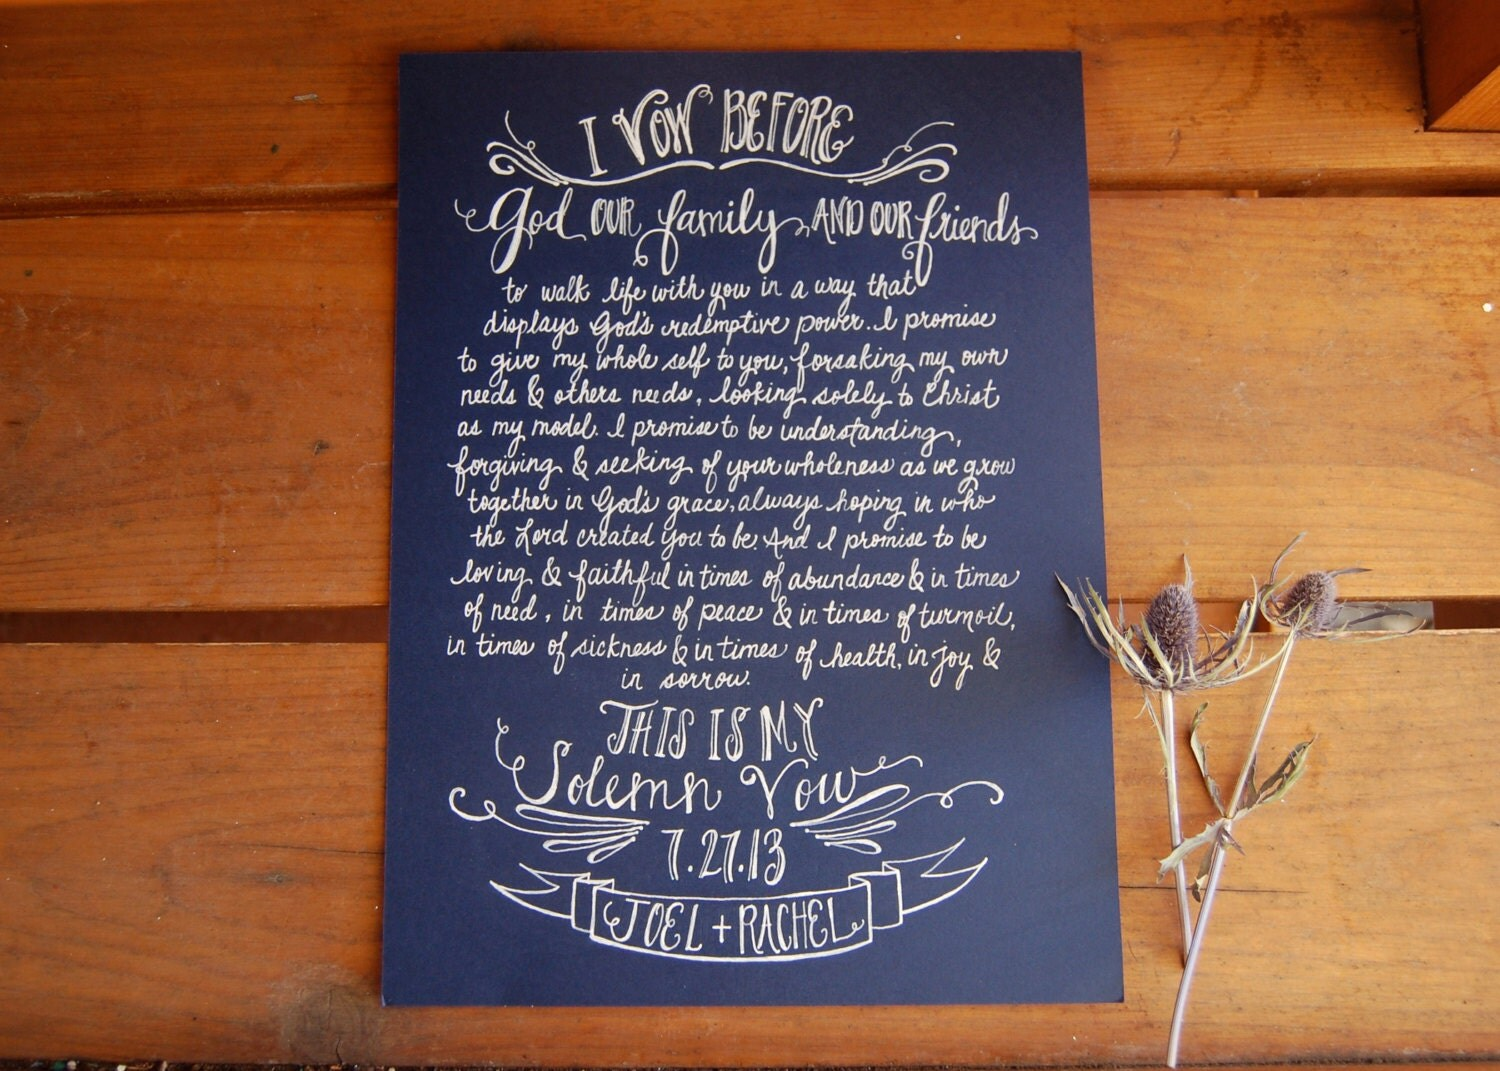 Bride And Grooms Vows Written Out In A Beautiful Art Form Painting Handwritten Calligraphy Words Over Blurry Picture Of The Two On Canvas